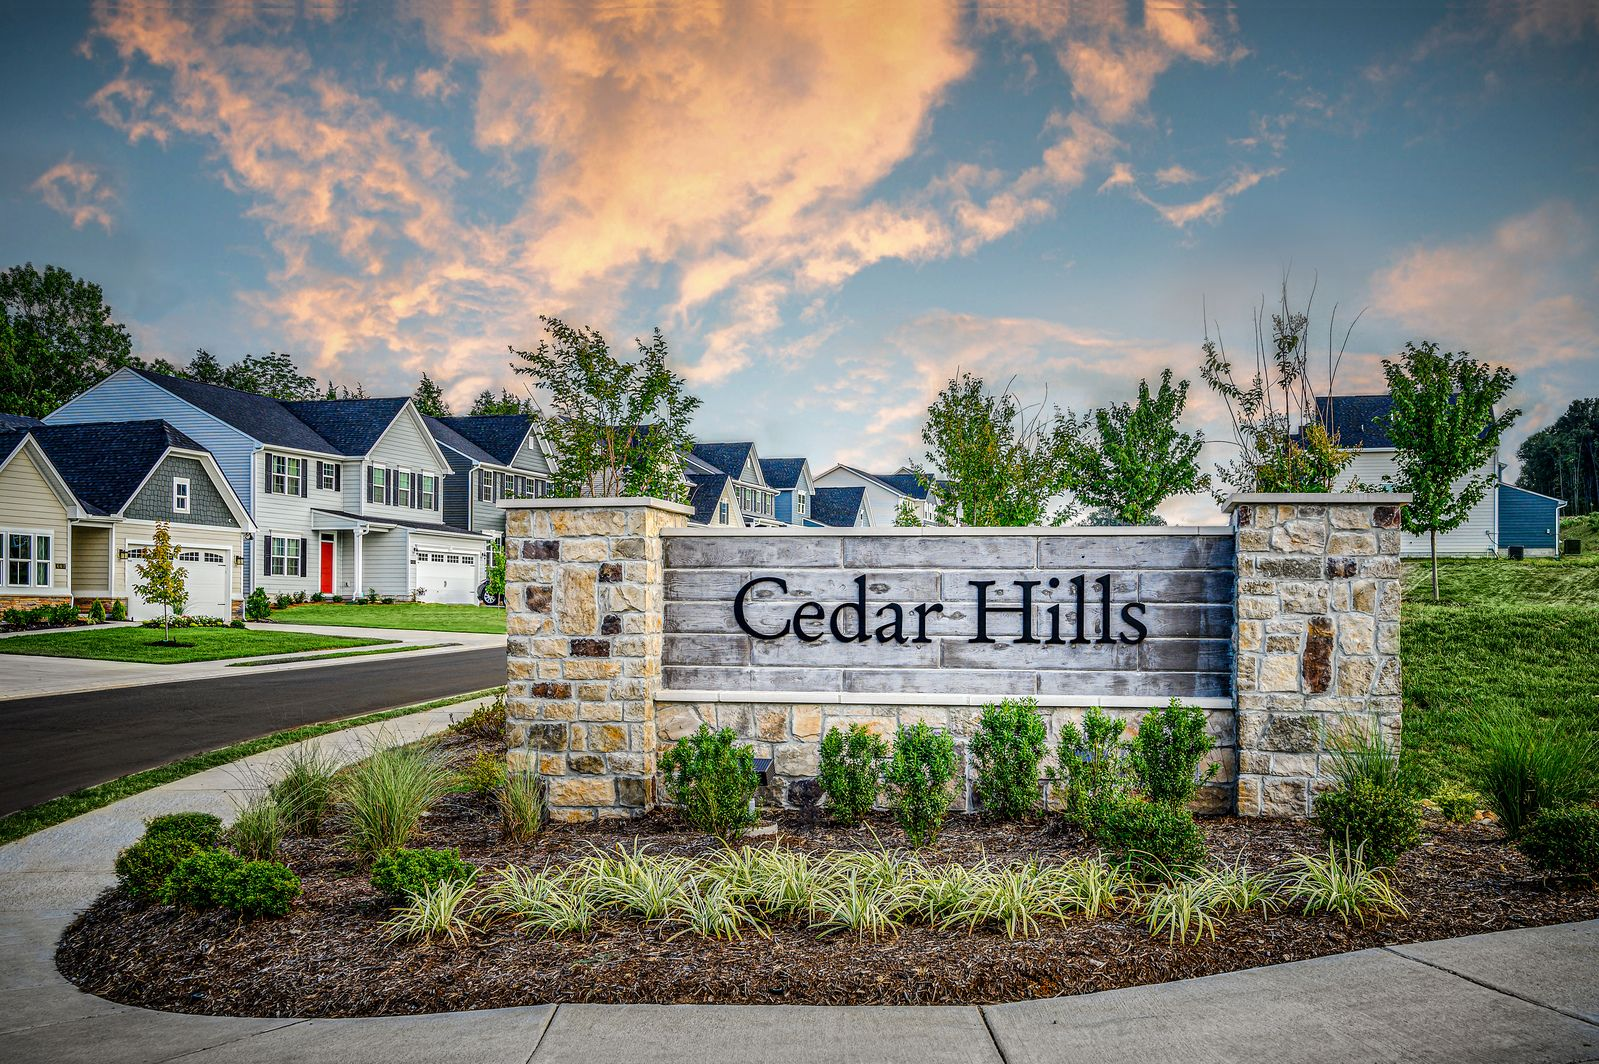 Cedar Hills - Limited Homesites Are Being Released Every Month:Charming community w/resort-style amenities &luxury finishes. Walkable to Stewarts Creek schools!Join the VIP list to be notified when new homesites are released in this sought-after community!